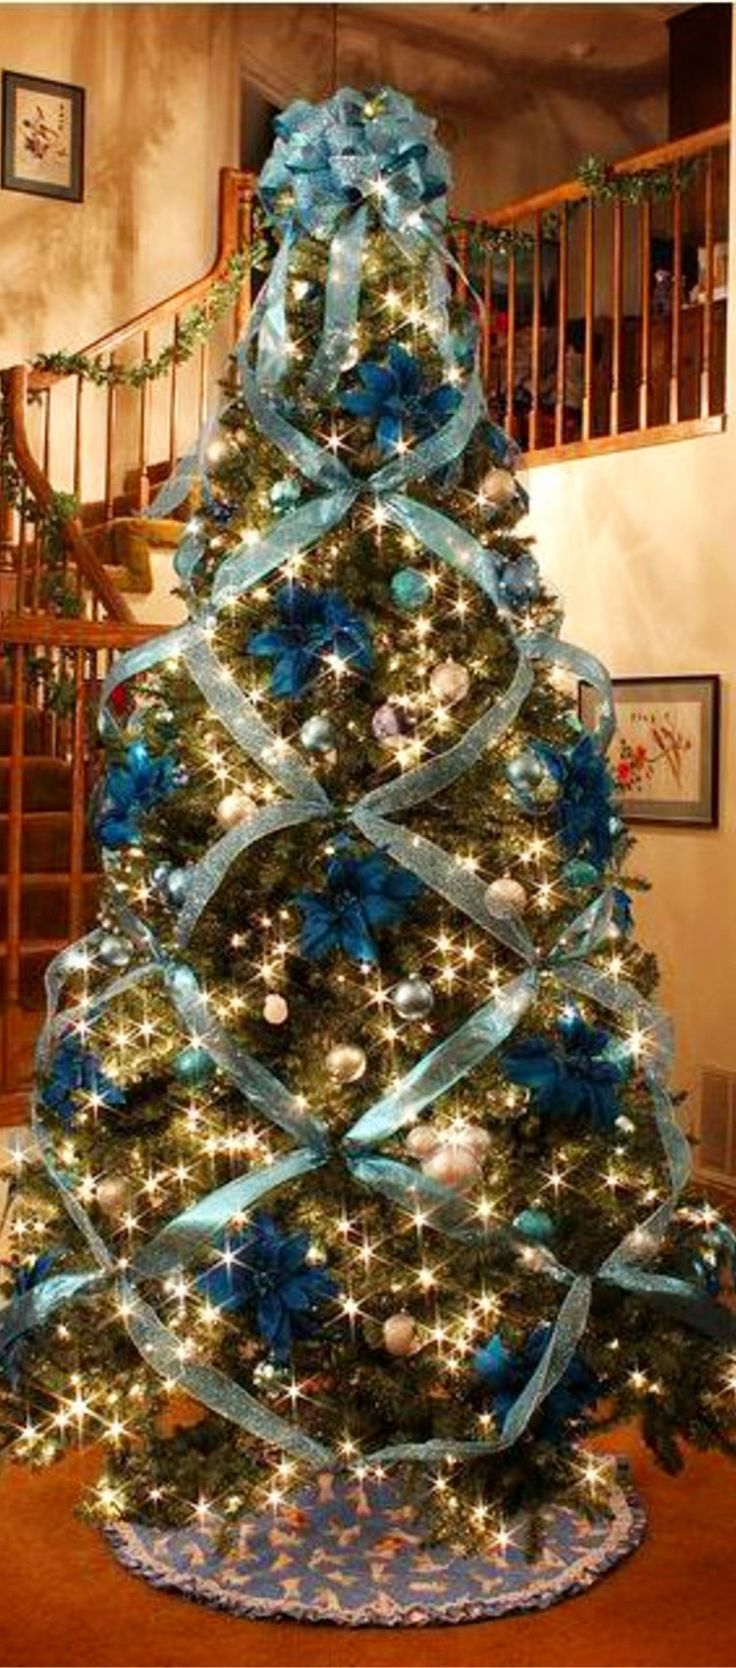 Christmas Tree Ideas - Criss Cross Ribbon when decorating your tree - it's gorgeous!